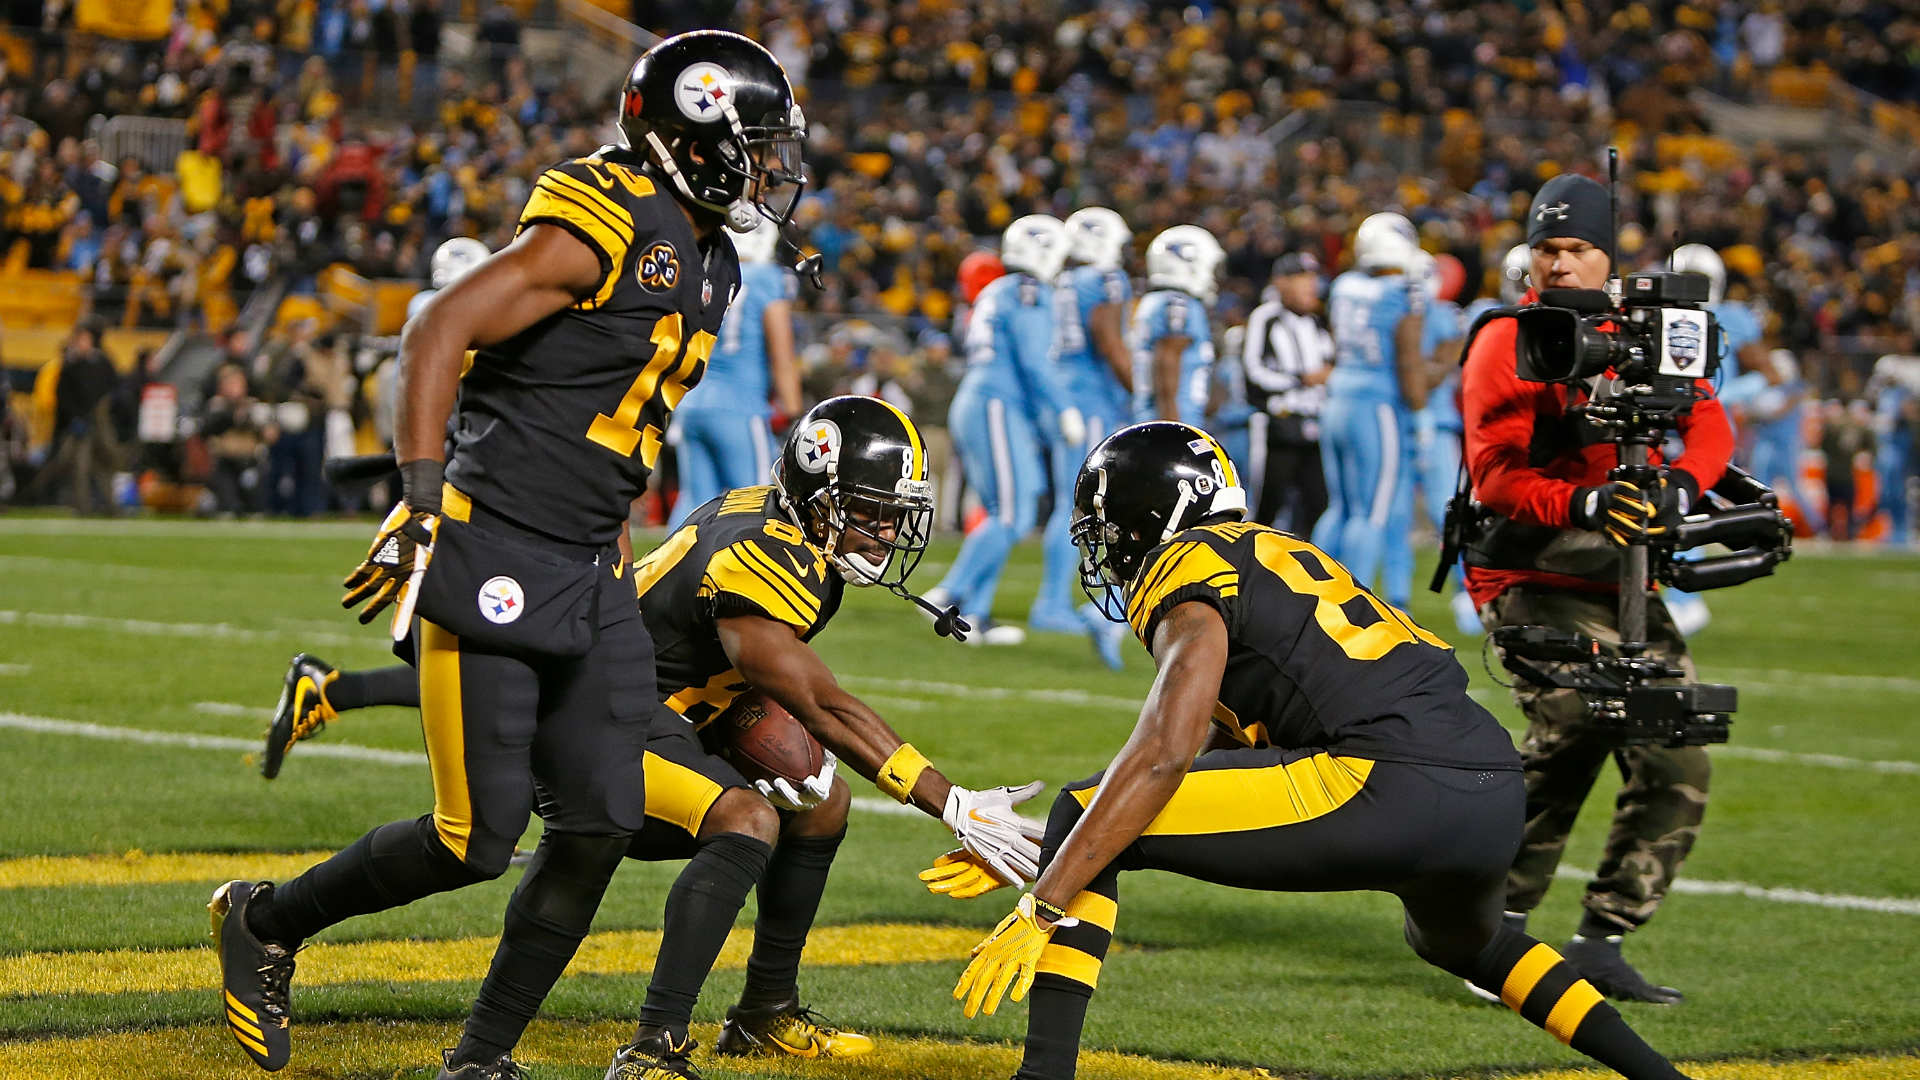 Three takeaways from Steelers' win over Titans